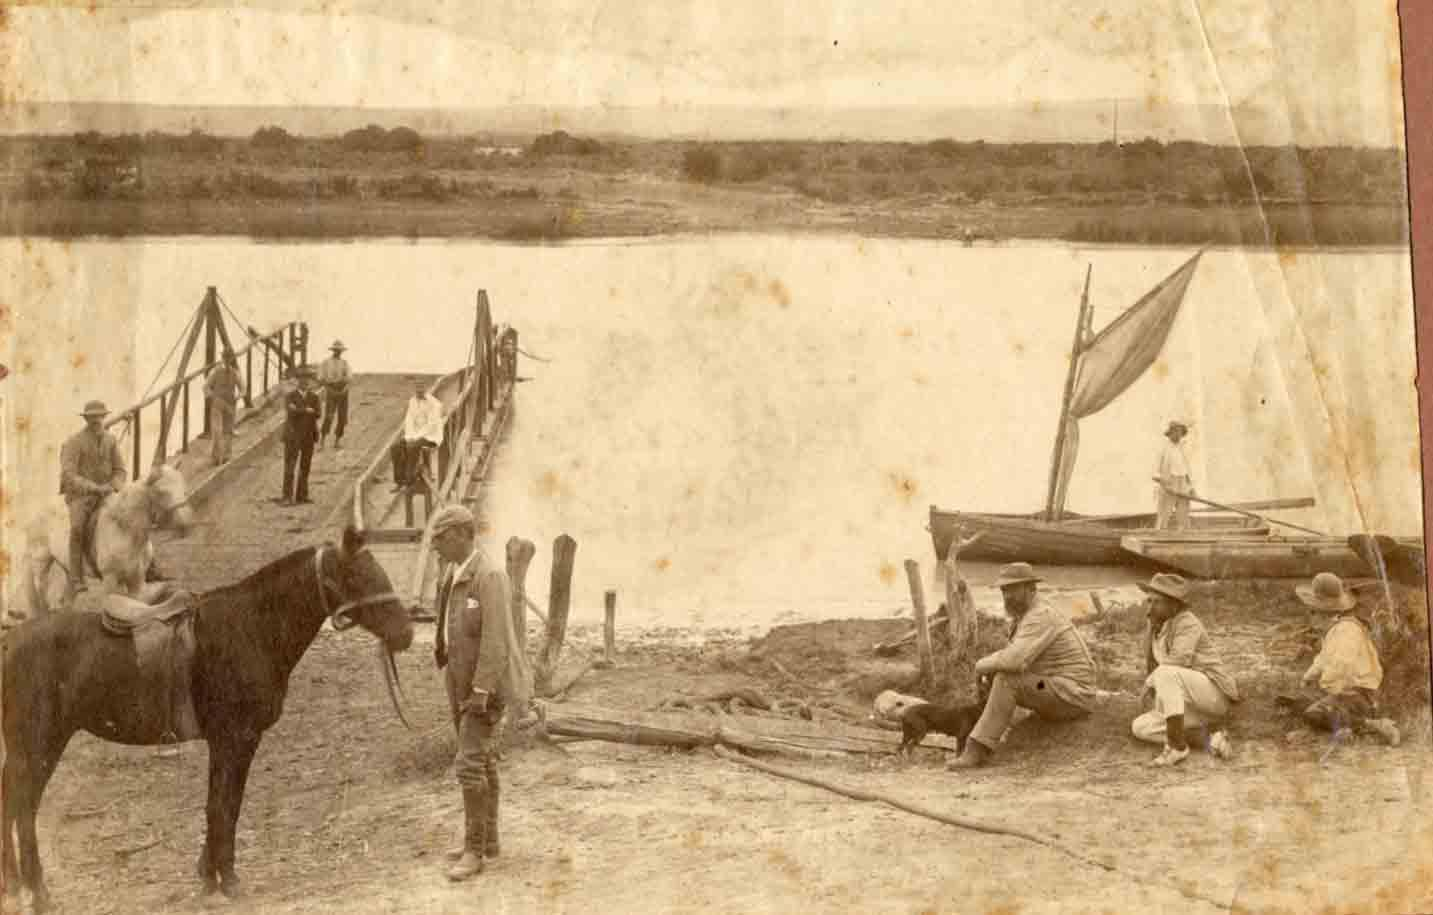 Gamtoos Ferry in 1875